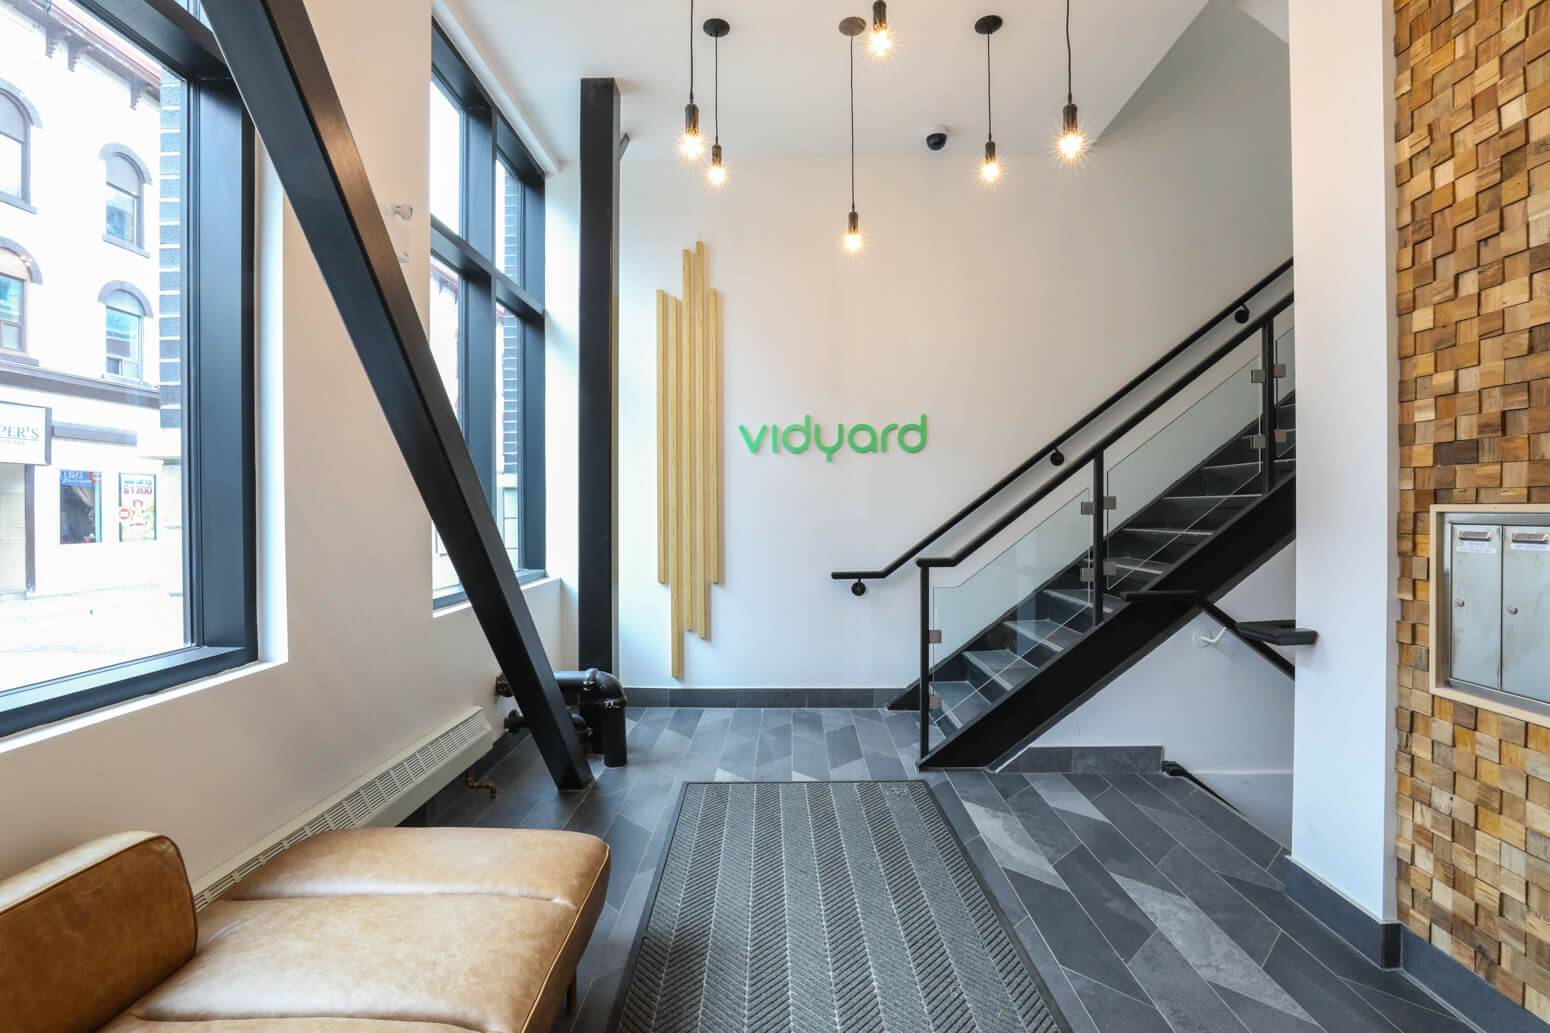 Vidyard Office Killer Spaces-1